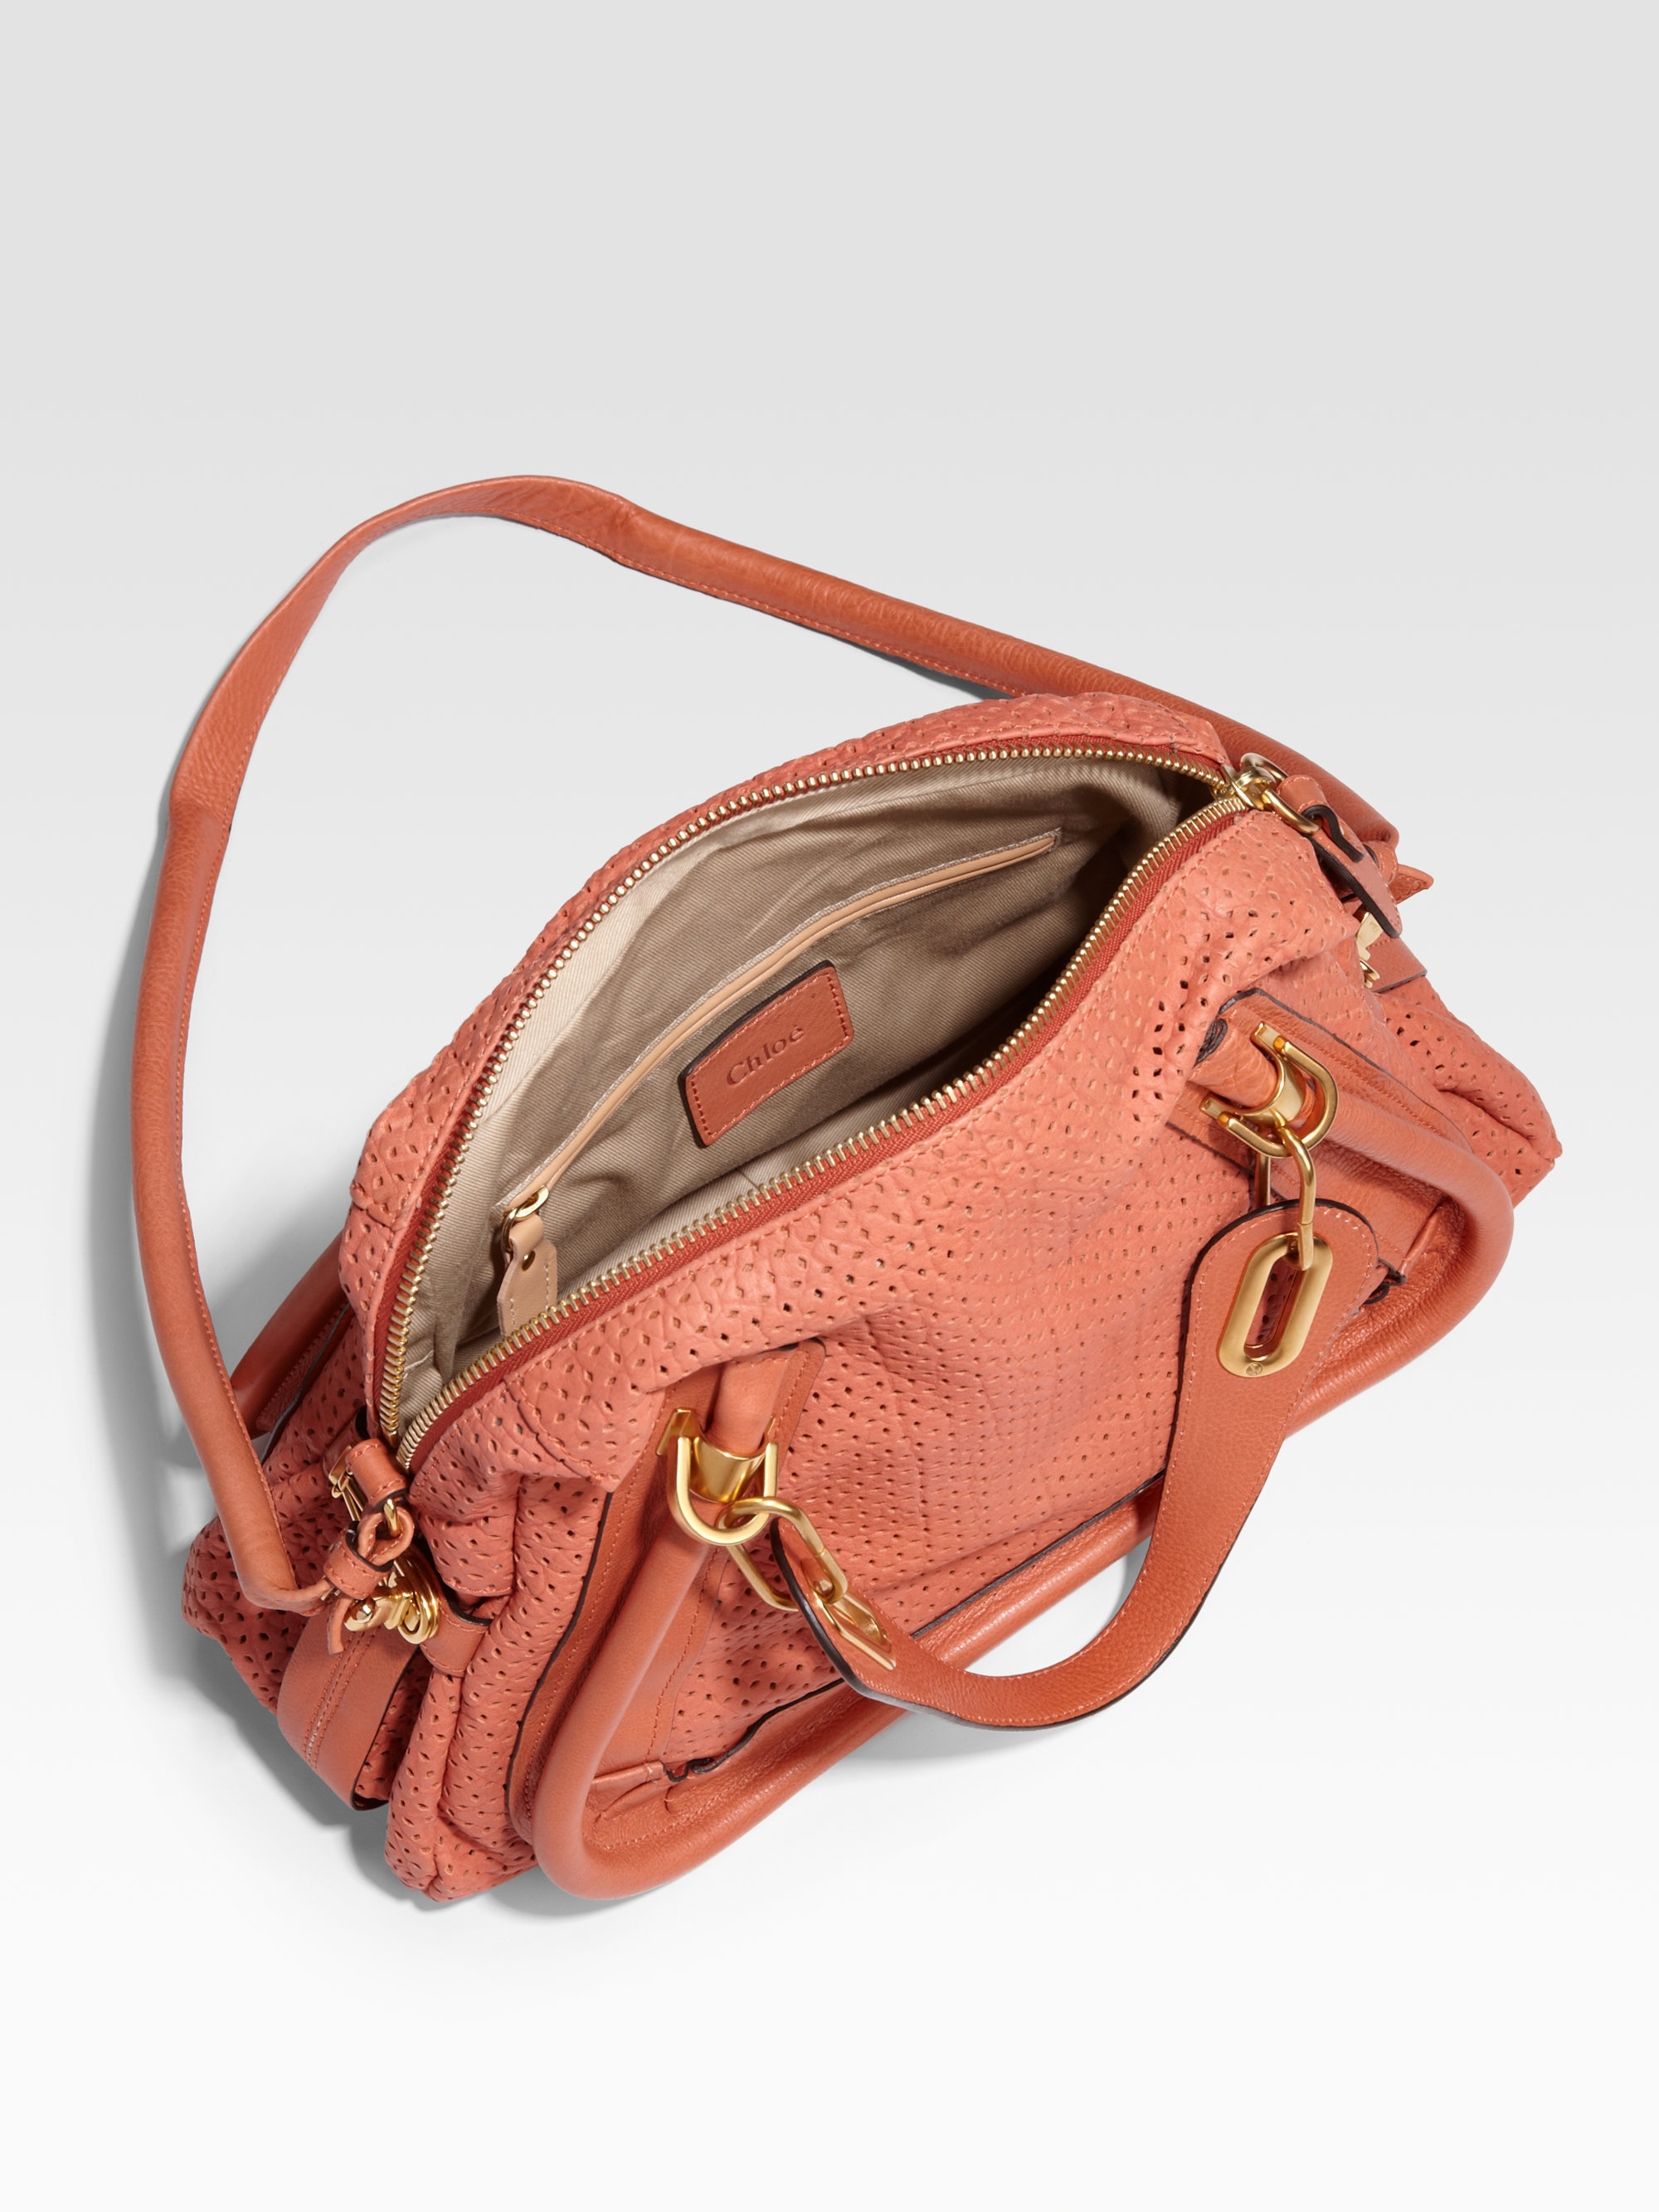 Chlo¨¦ Paraty Medium Perforated Leather Tote in Pink (coral) | Lyst